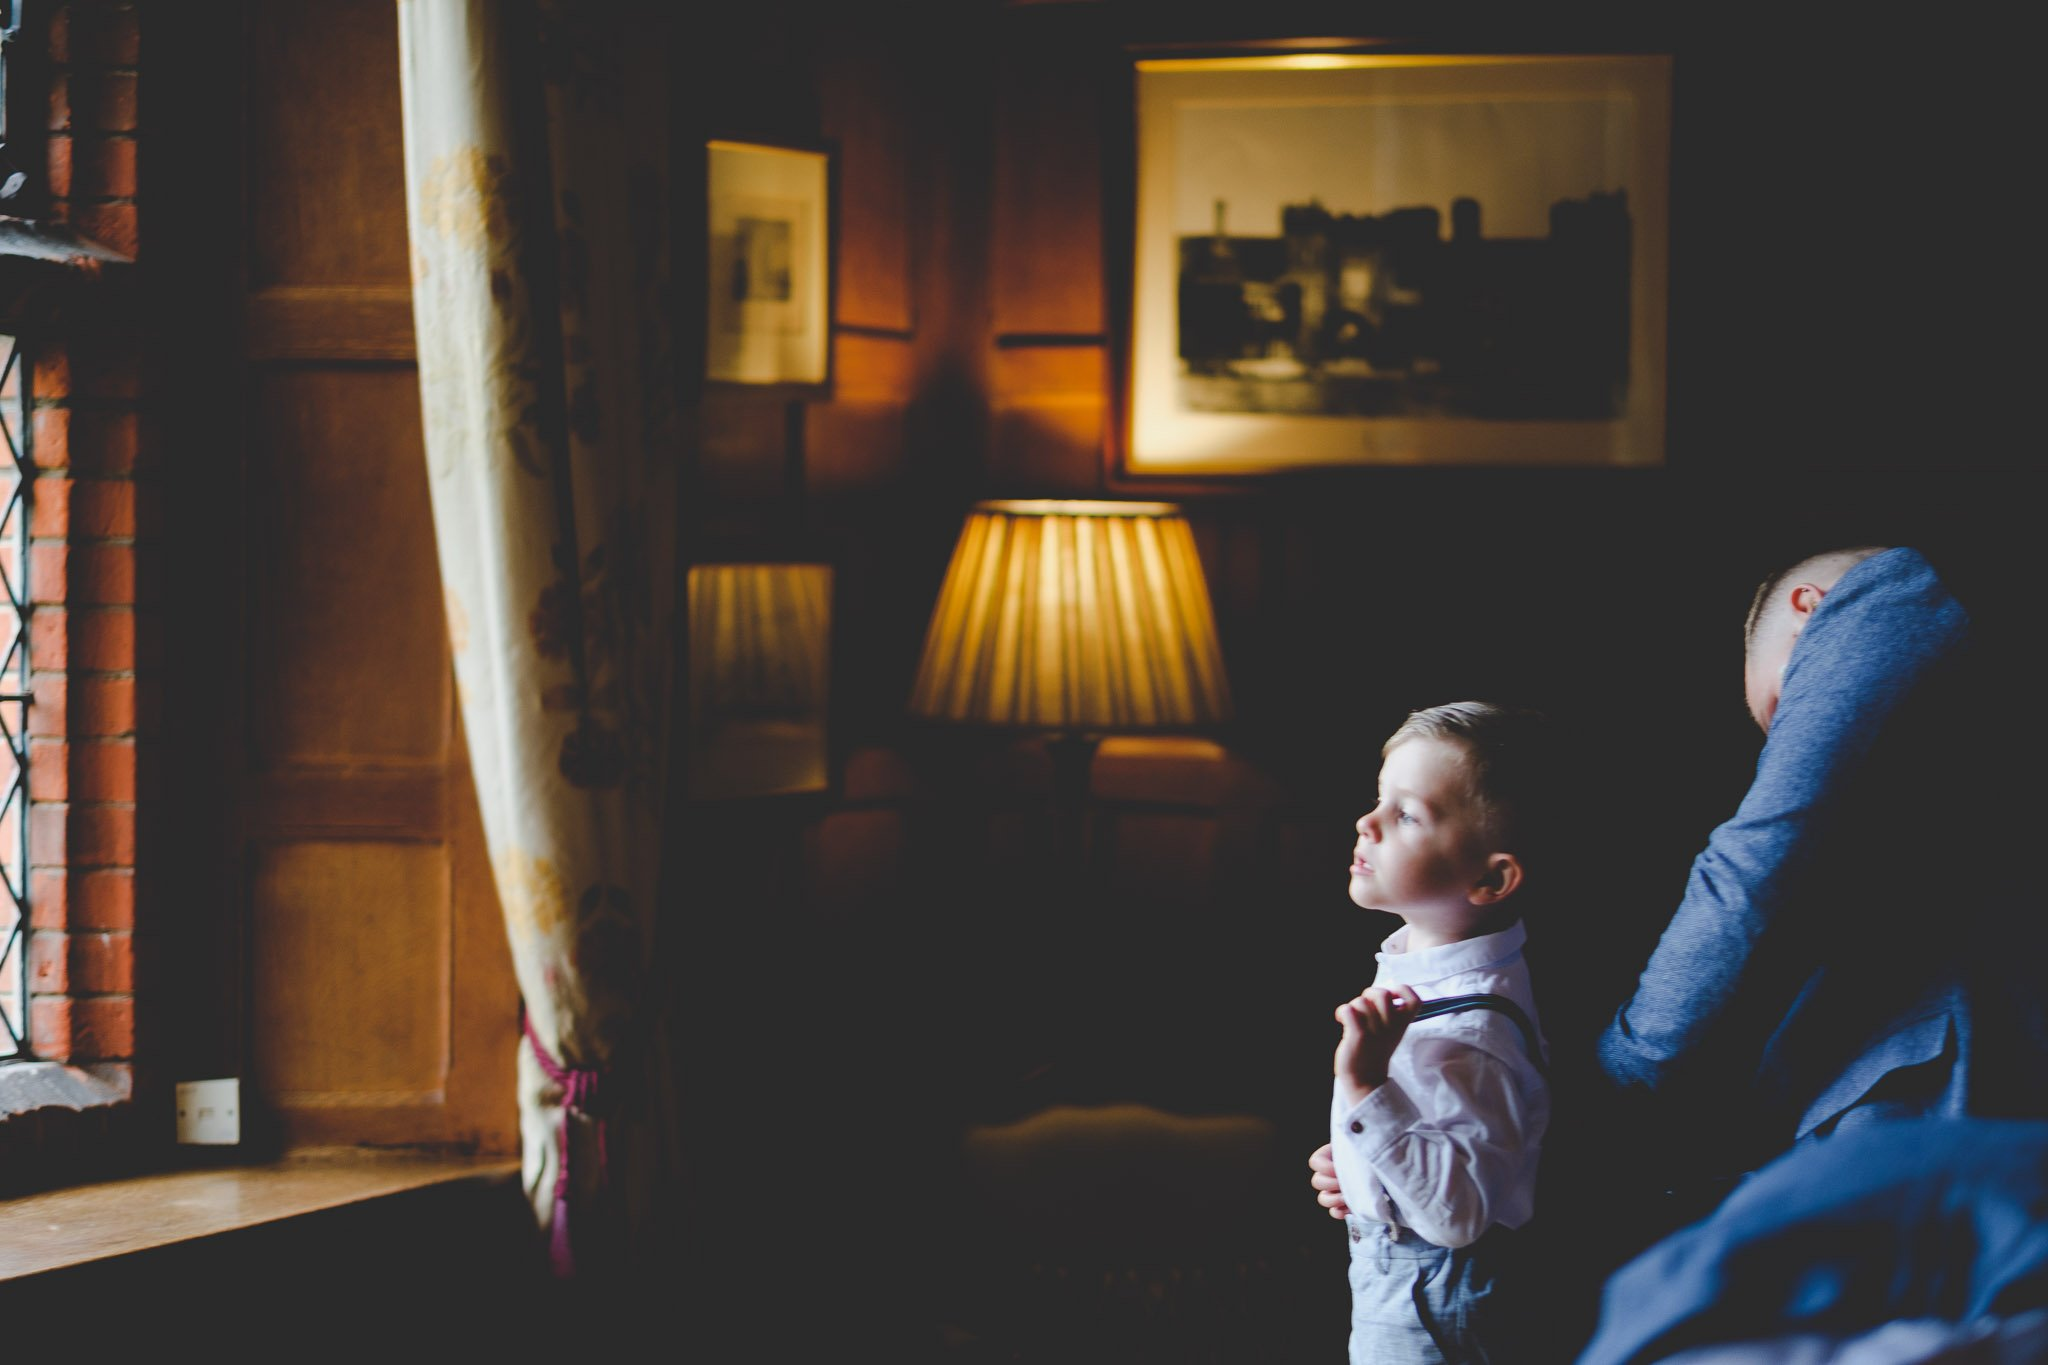 Groom helps son get changed while looking out a window